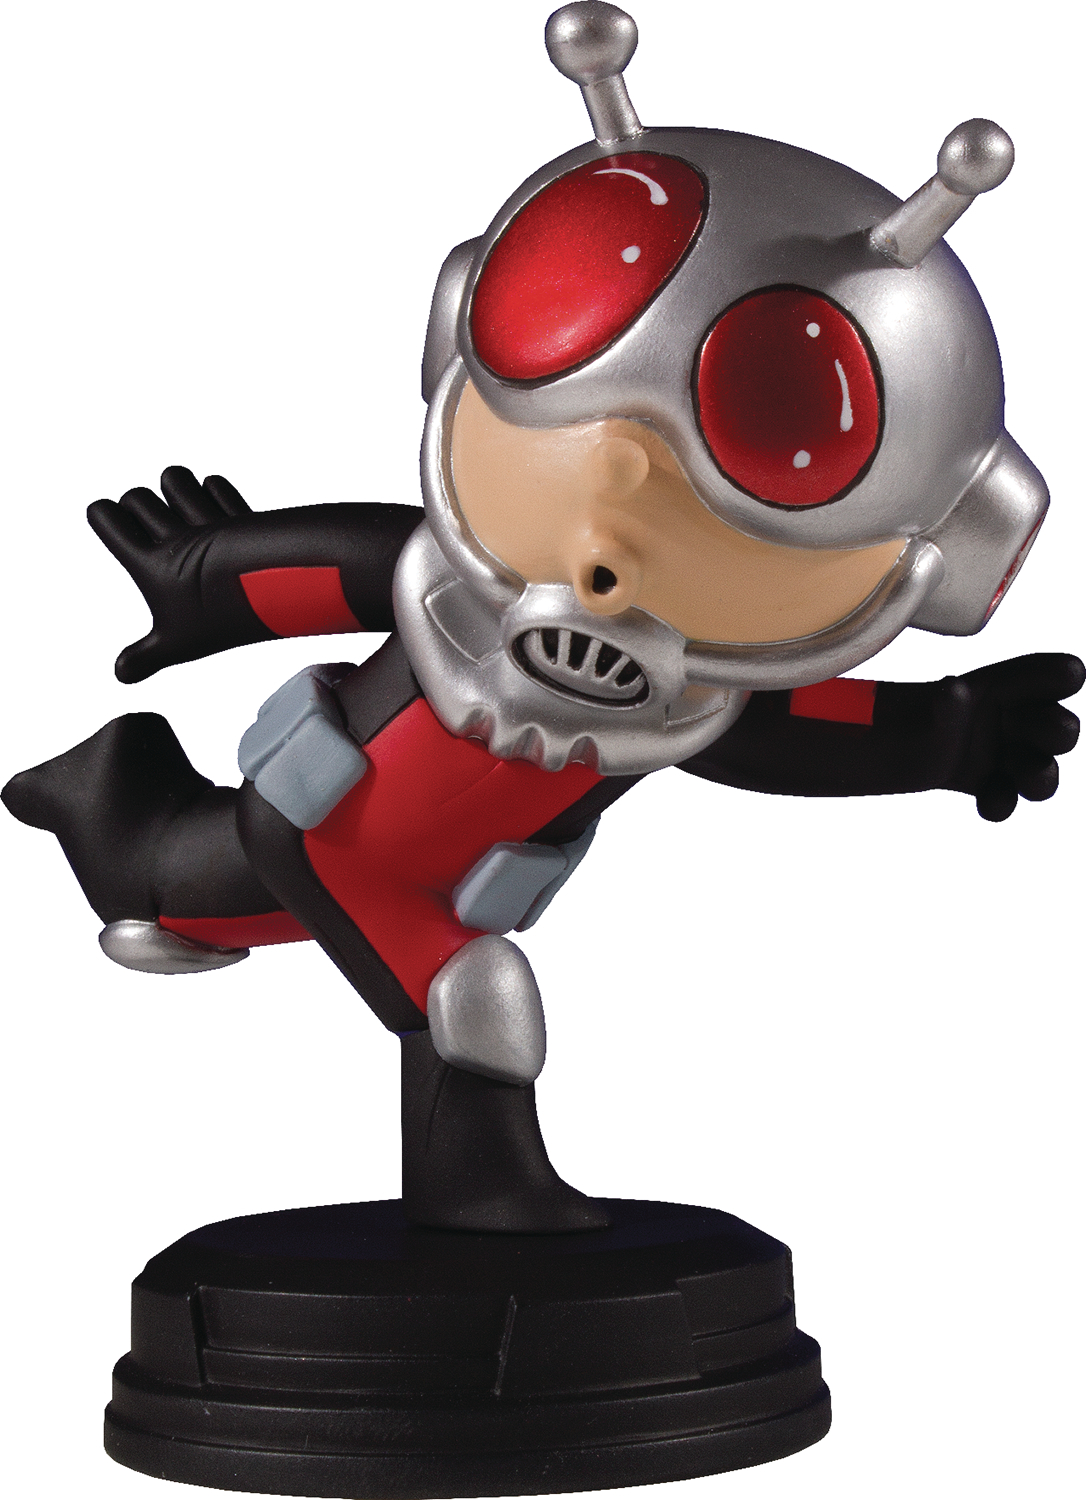 MARVEL ANIMATED STYLE ANT-MAN STATUE